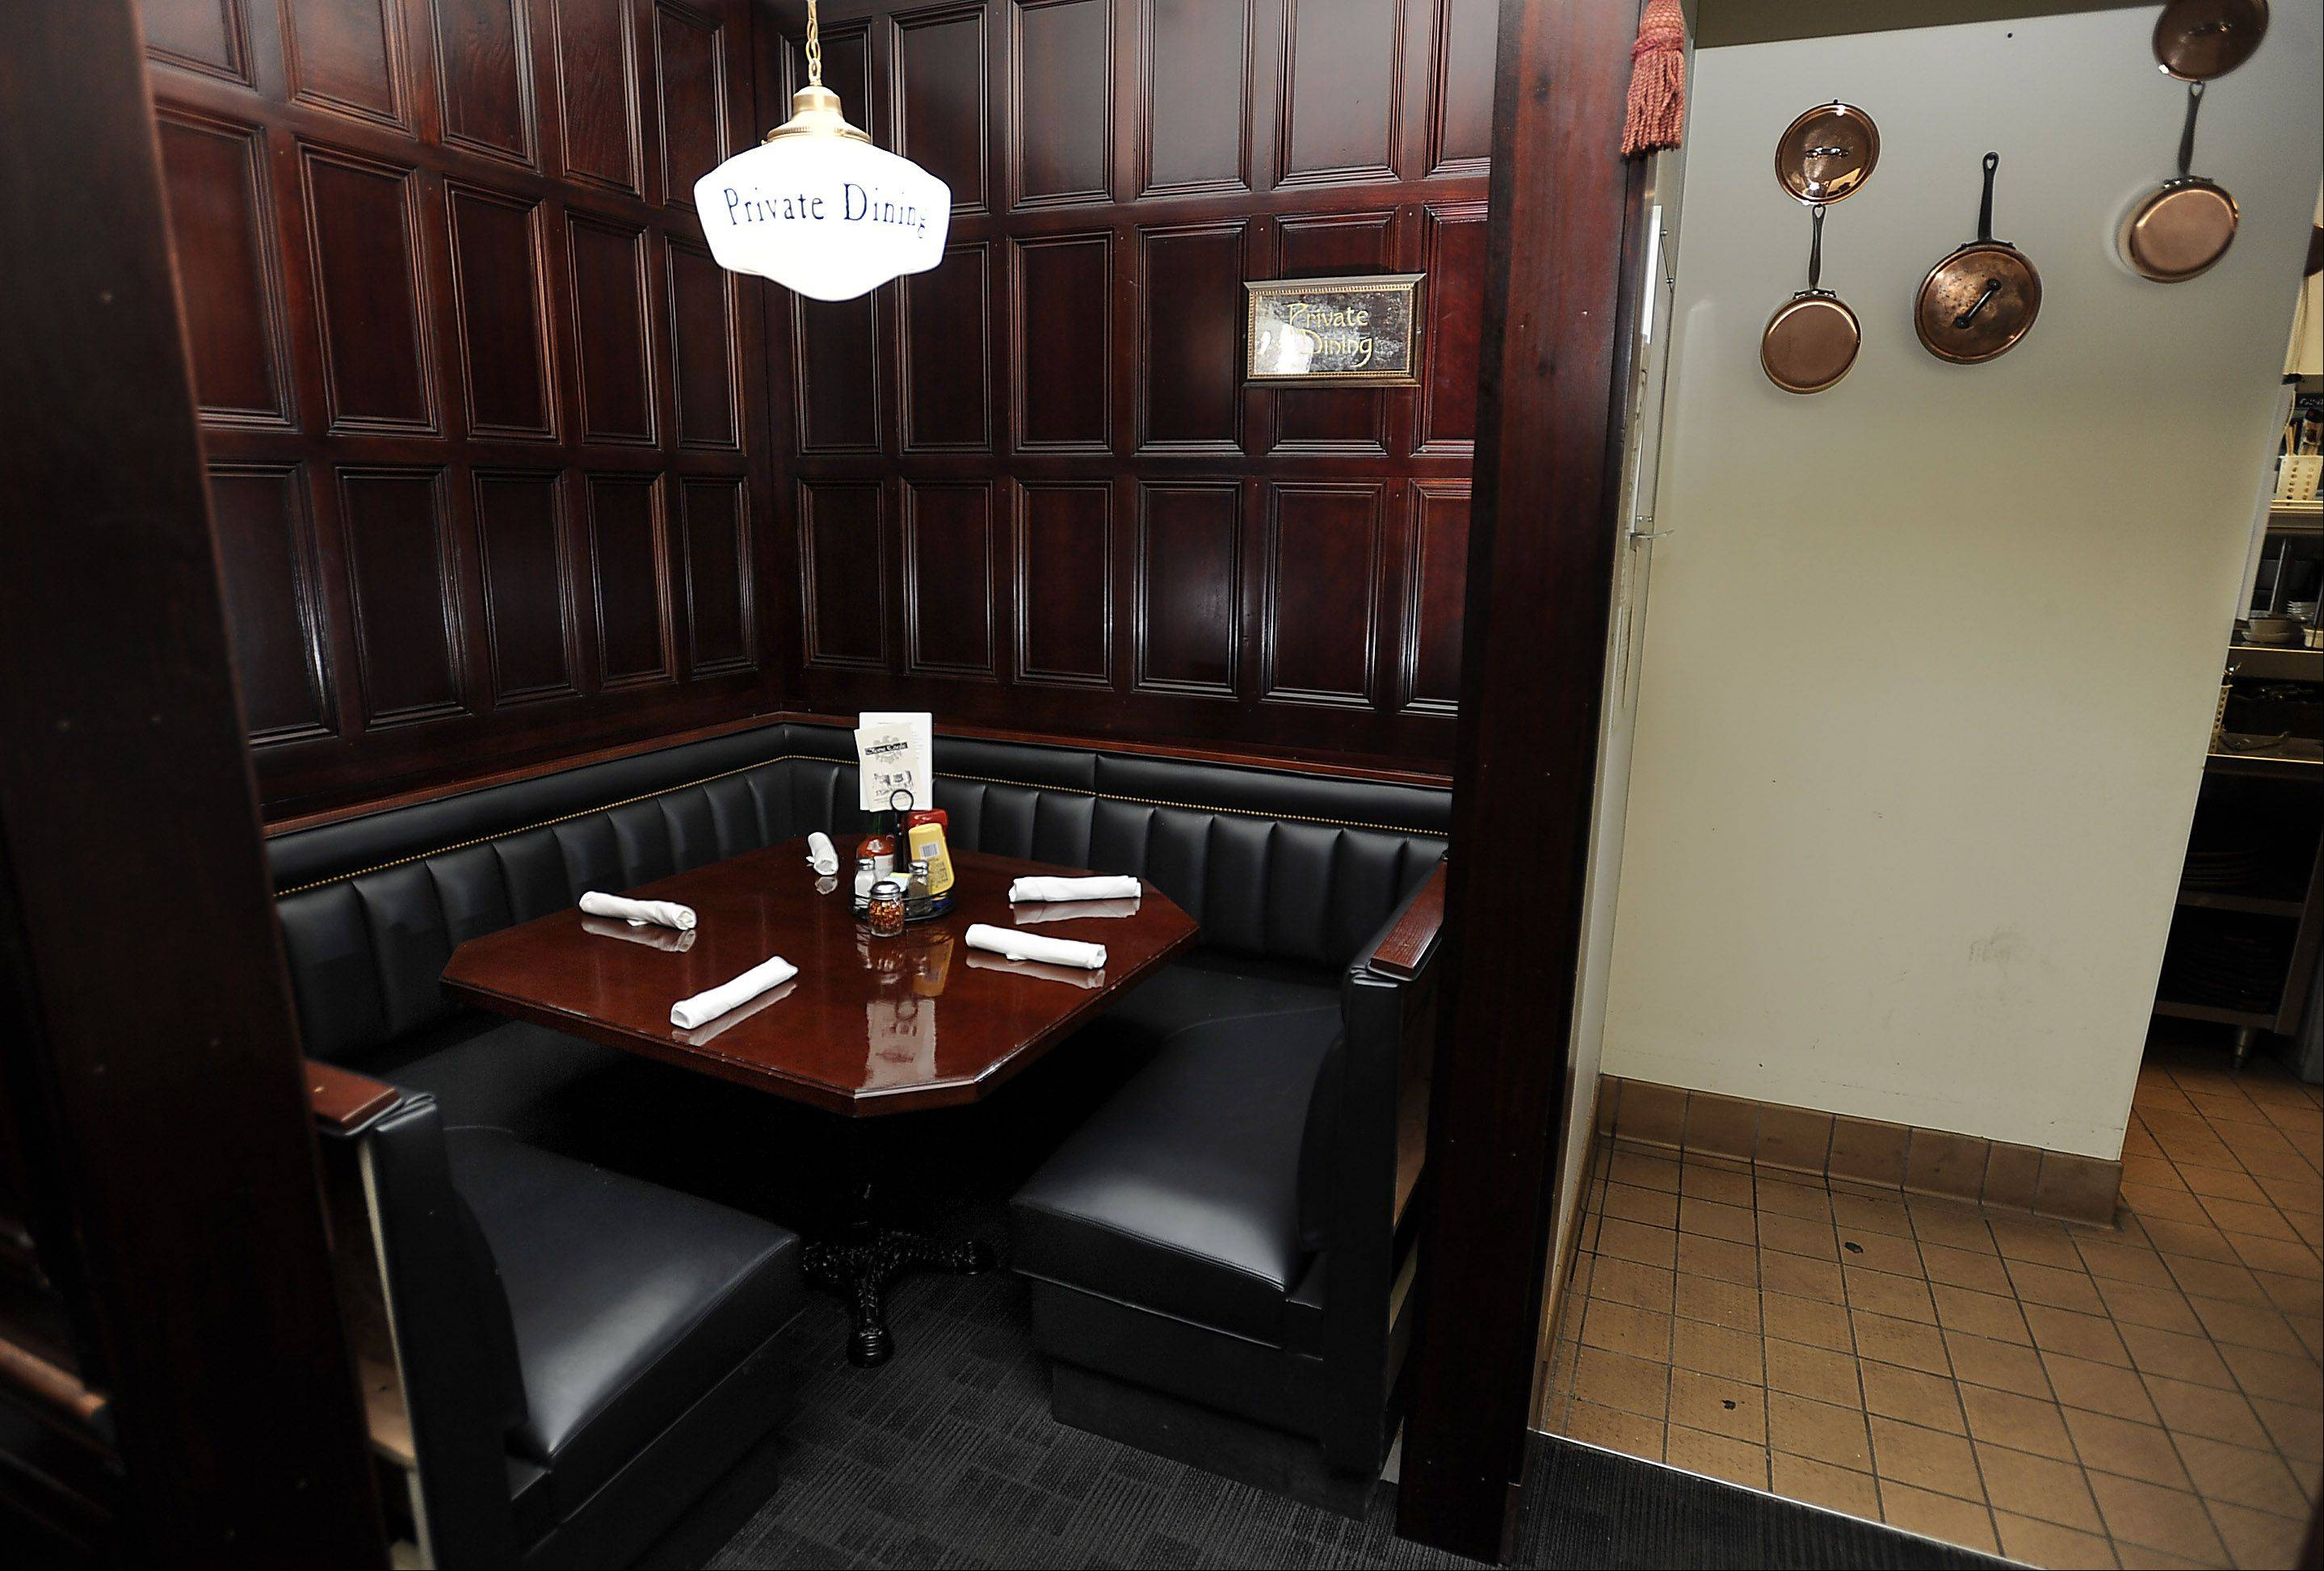 The private dining room at the Stone Eagle Tavern in Hoffman Estates is for those moments you want to eat away from the crowd.